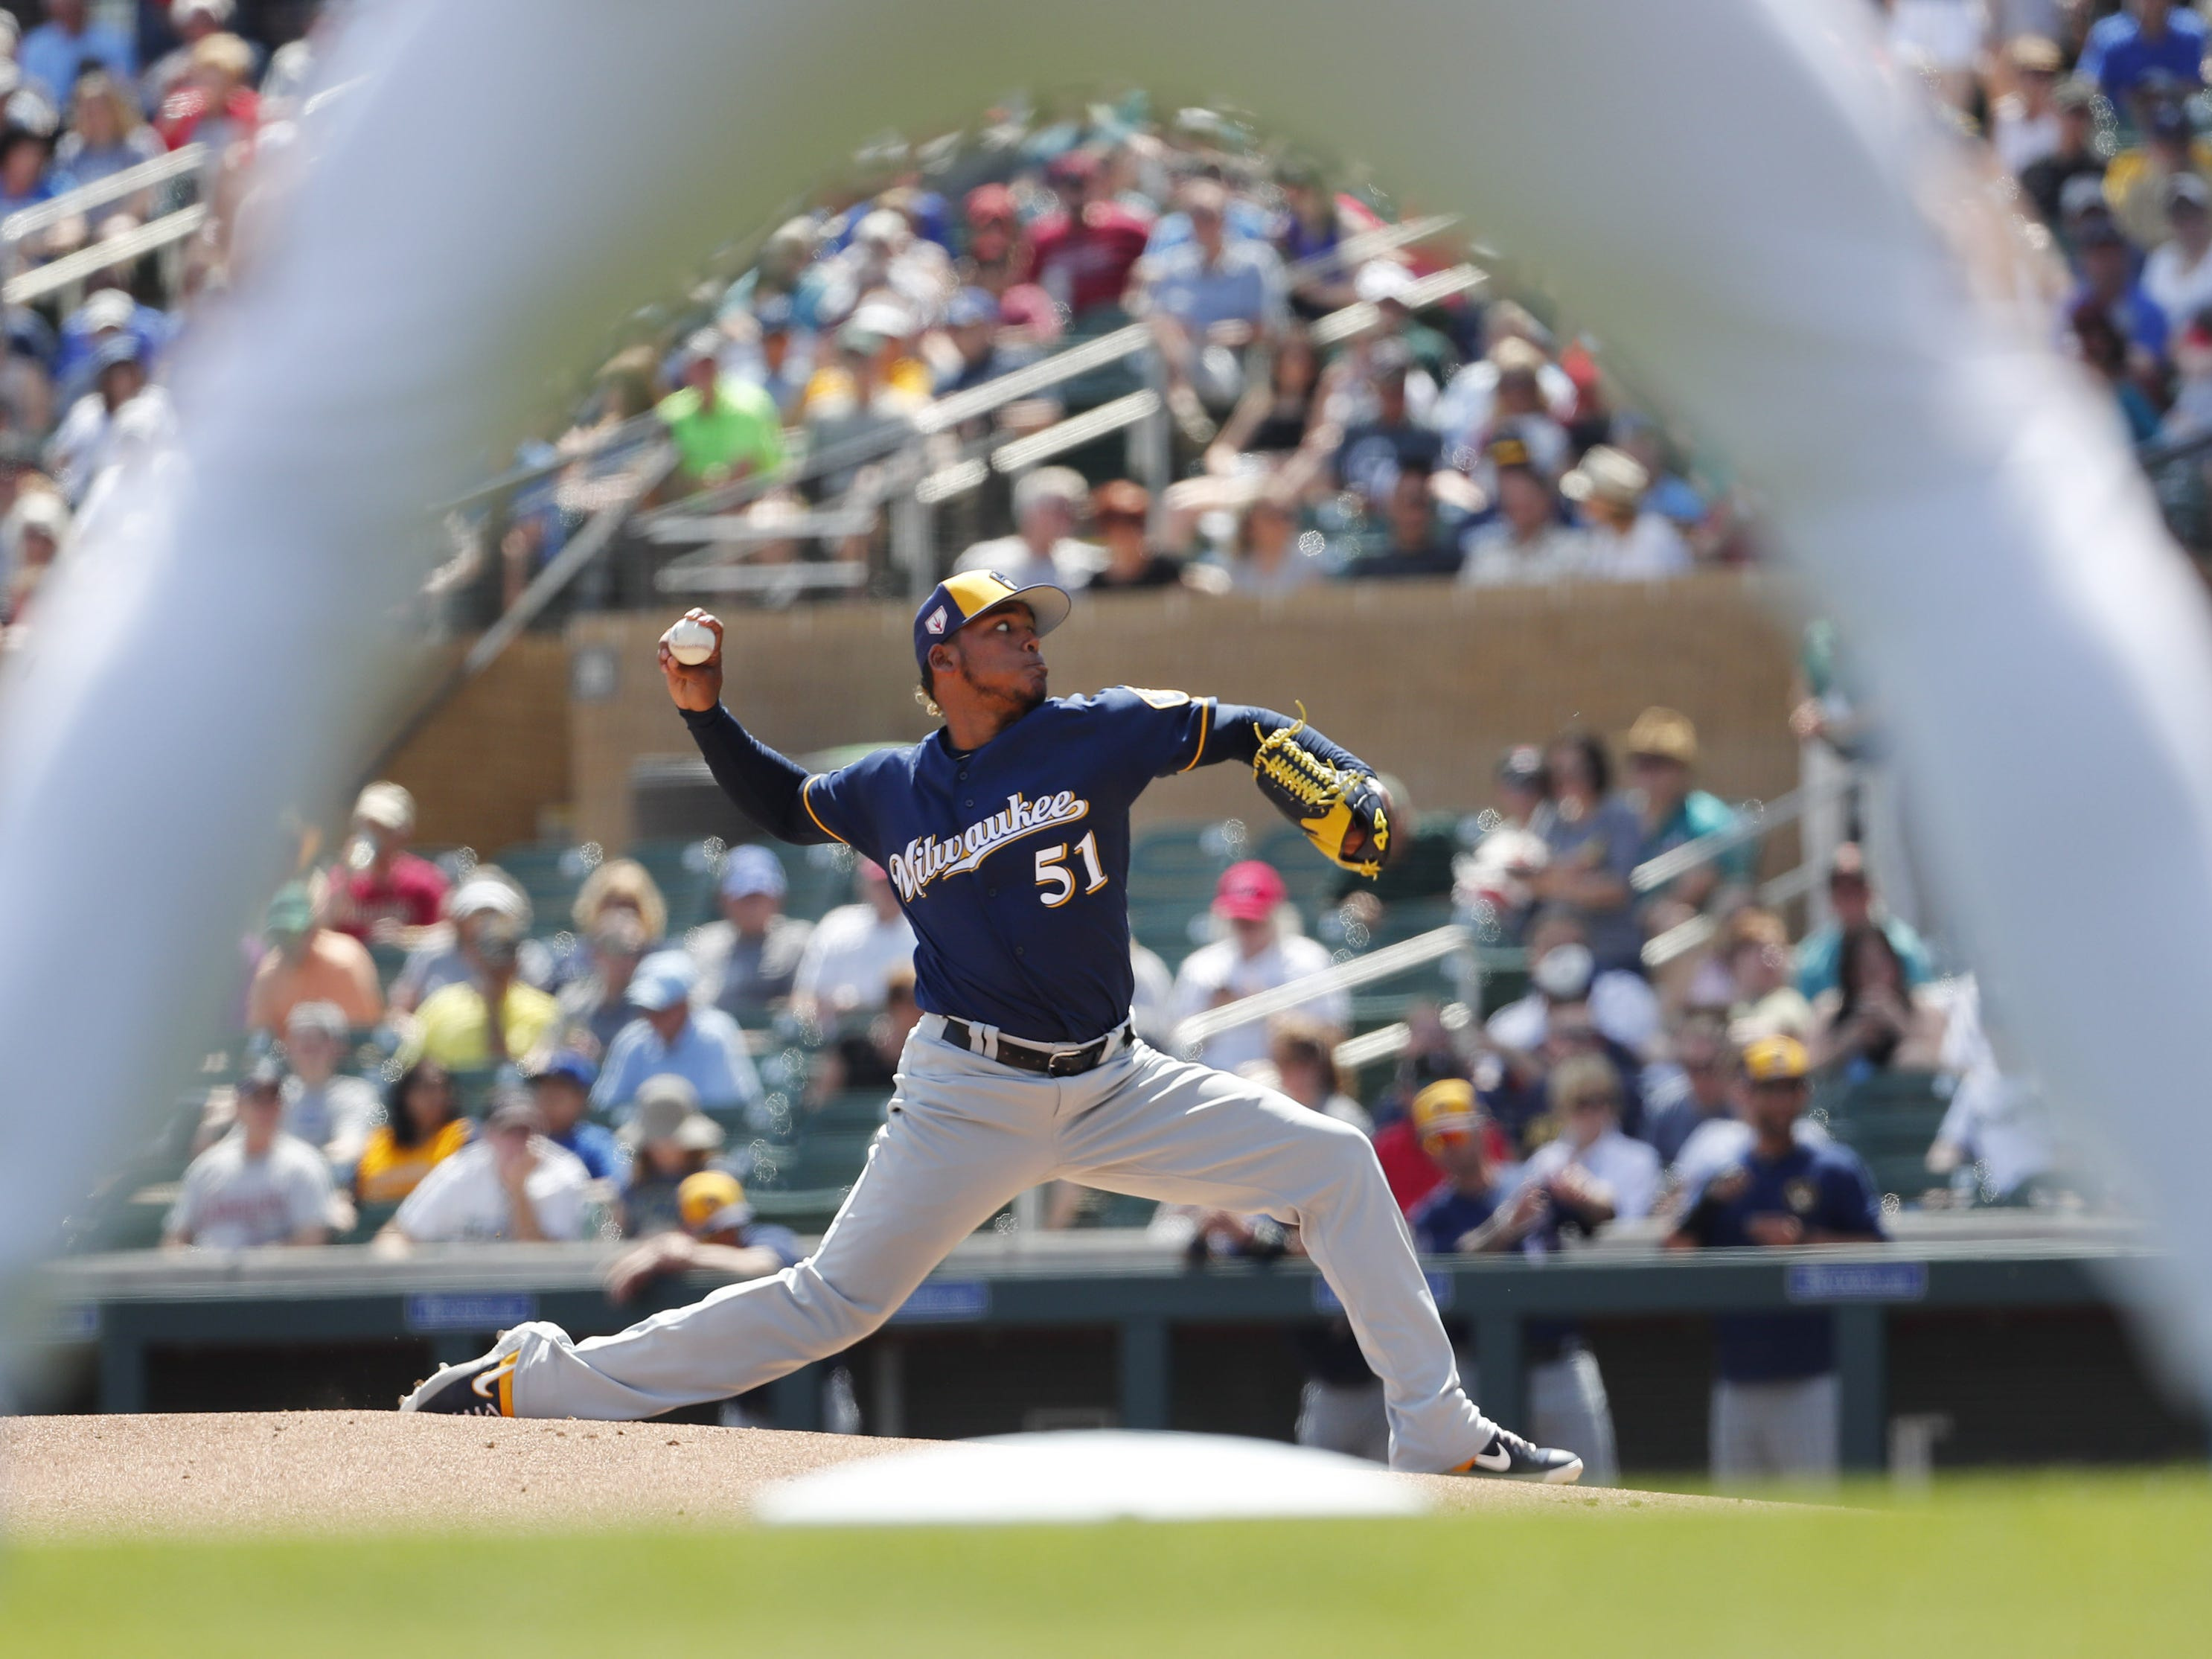 Milwaukee Brewers starting pitcher Freddy Peralta (51) throws against the Arizona Diamondbacks during spring training at Salt River Fields at Talking Stick March 24, 2019.